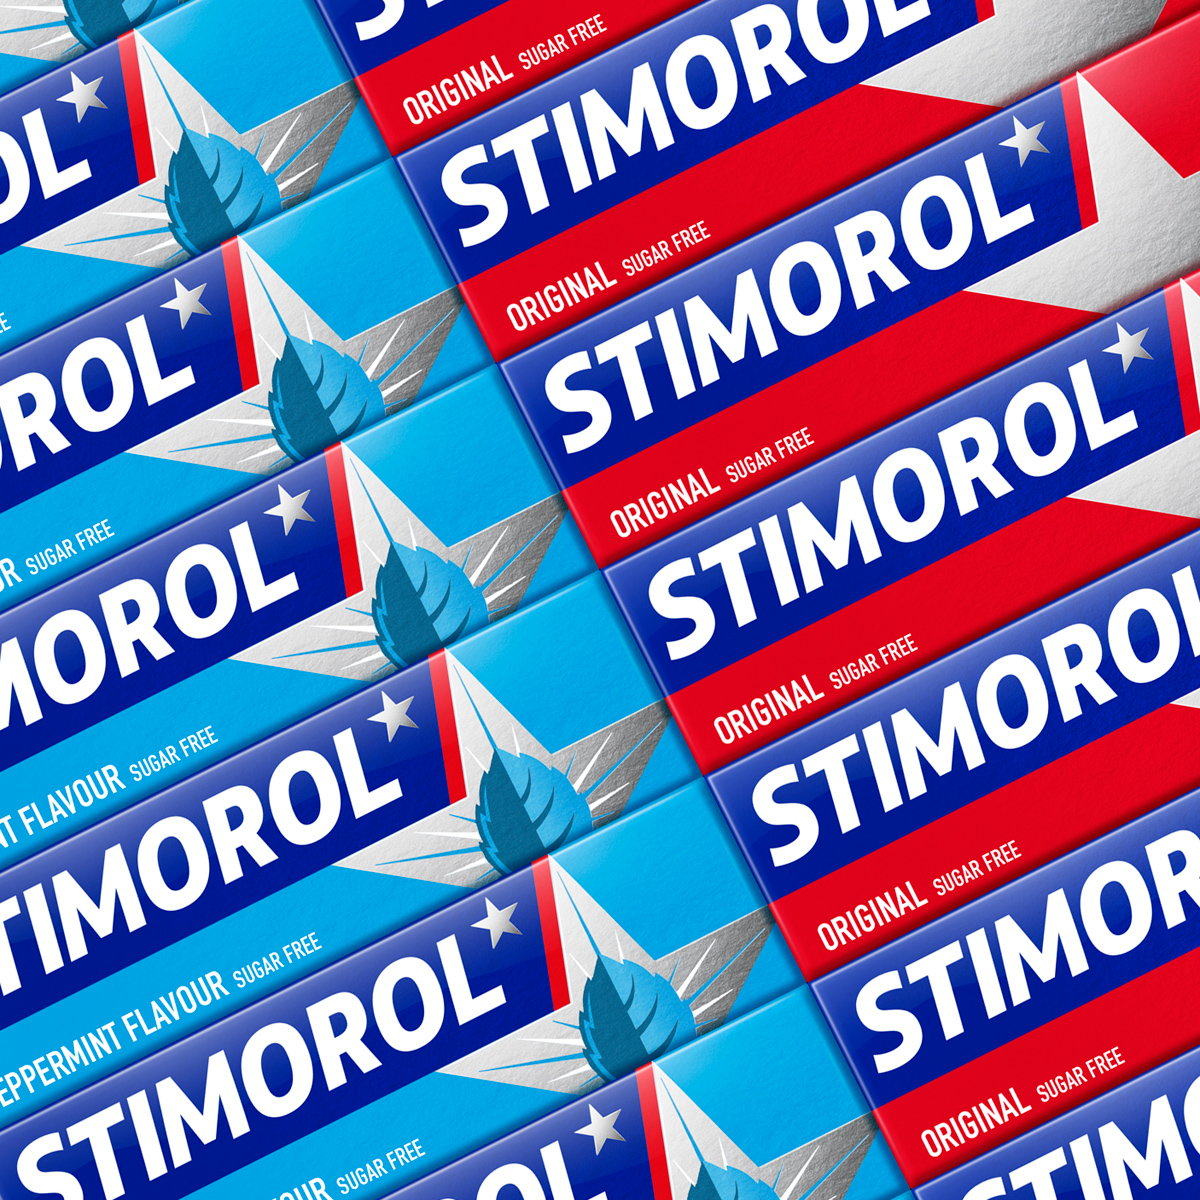 Bulletproof Creates Bold New Branding for Stimorol